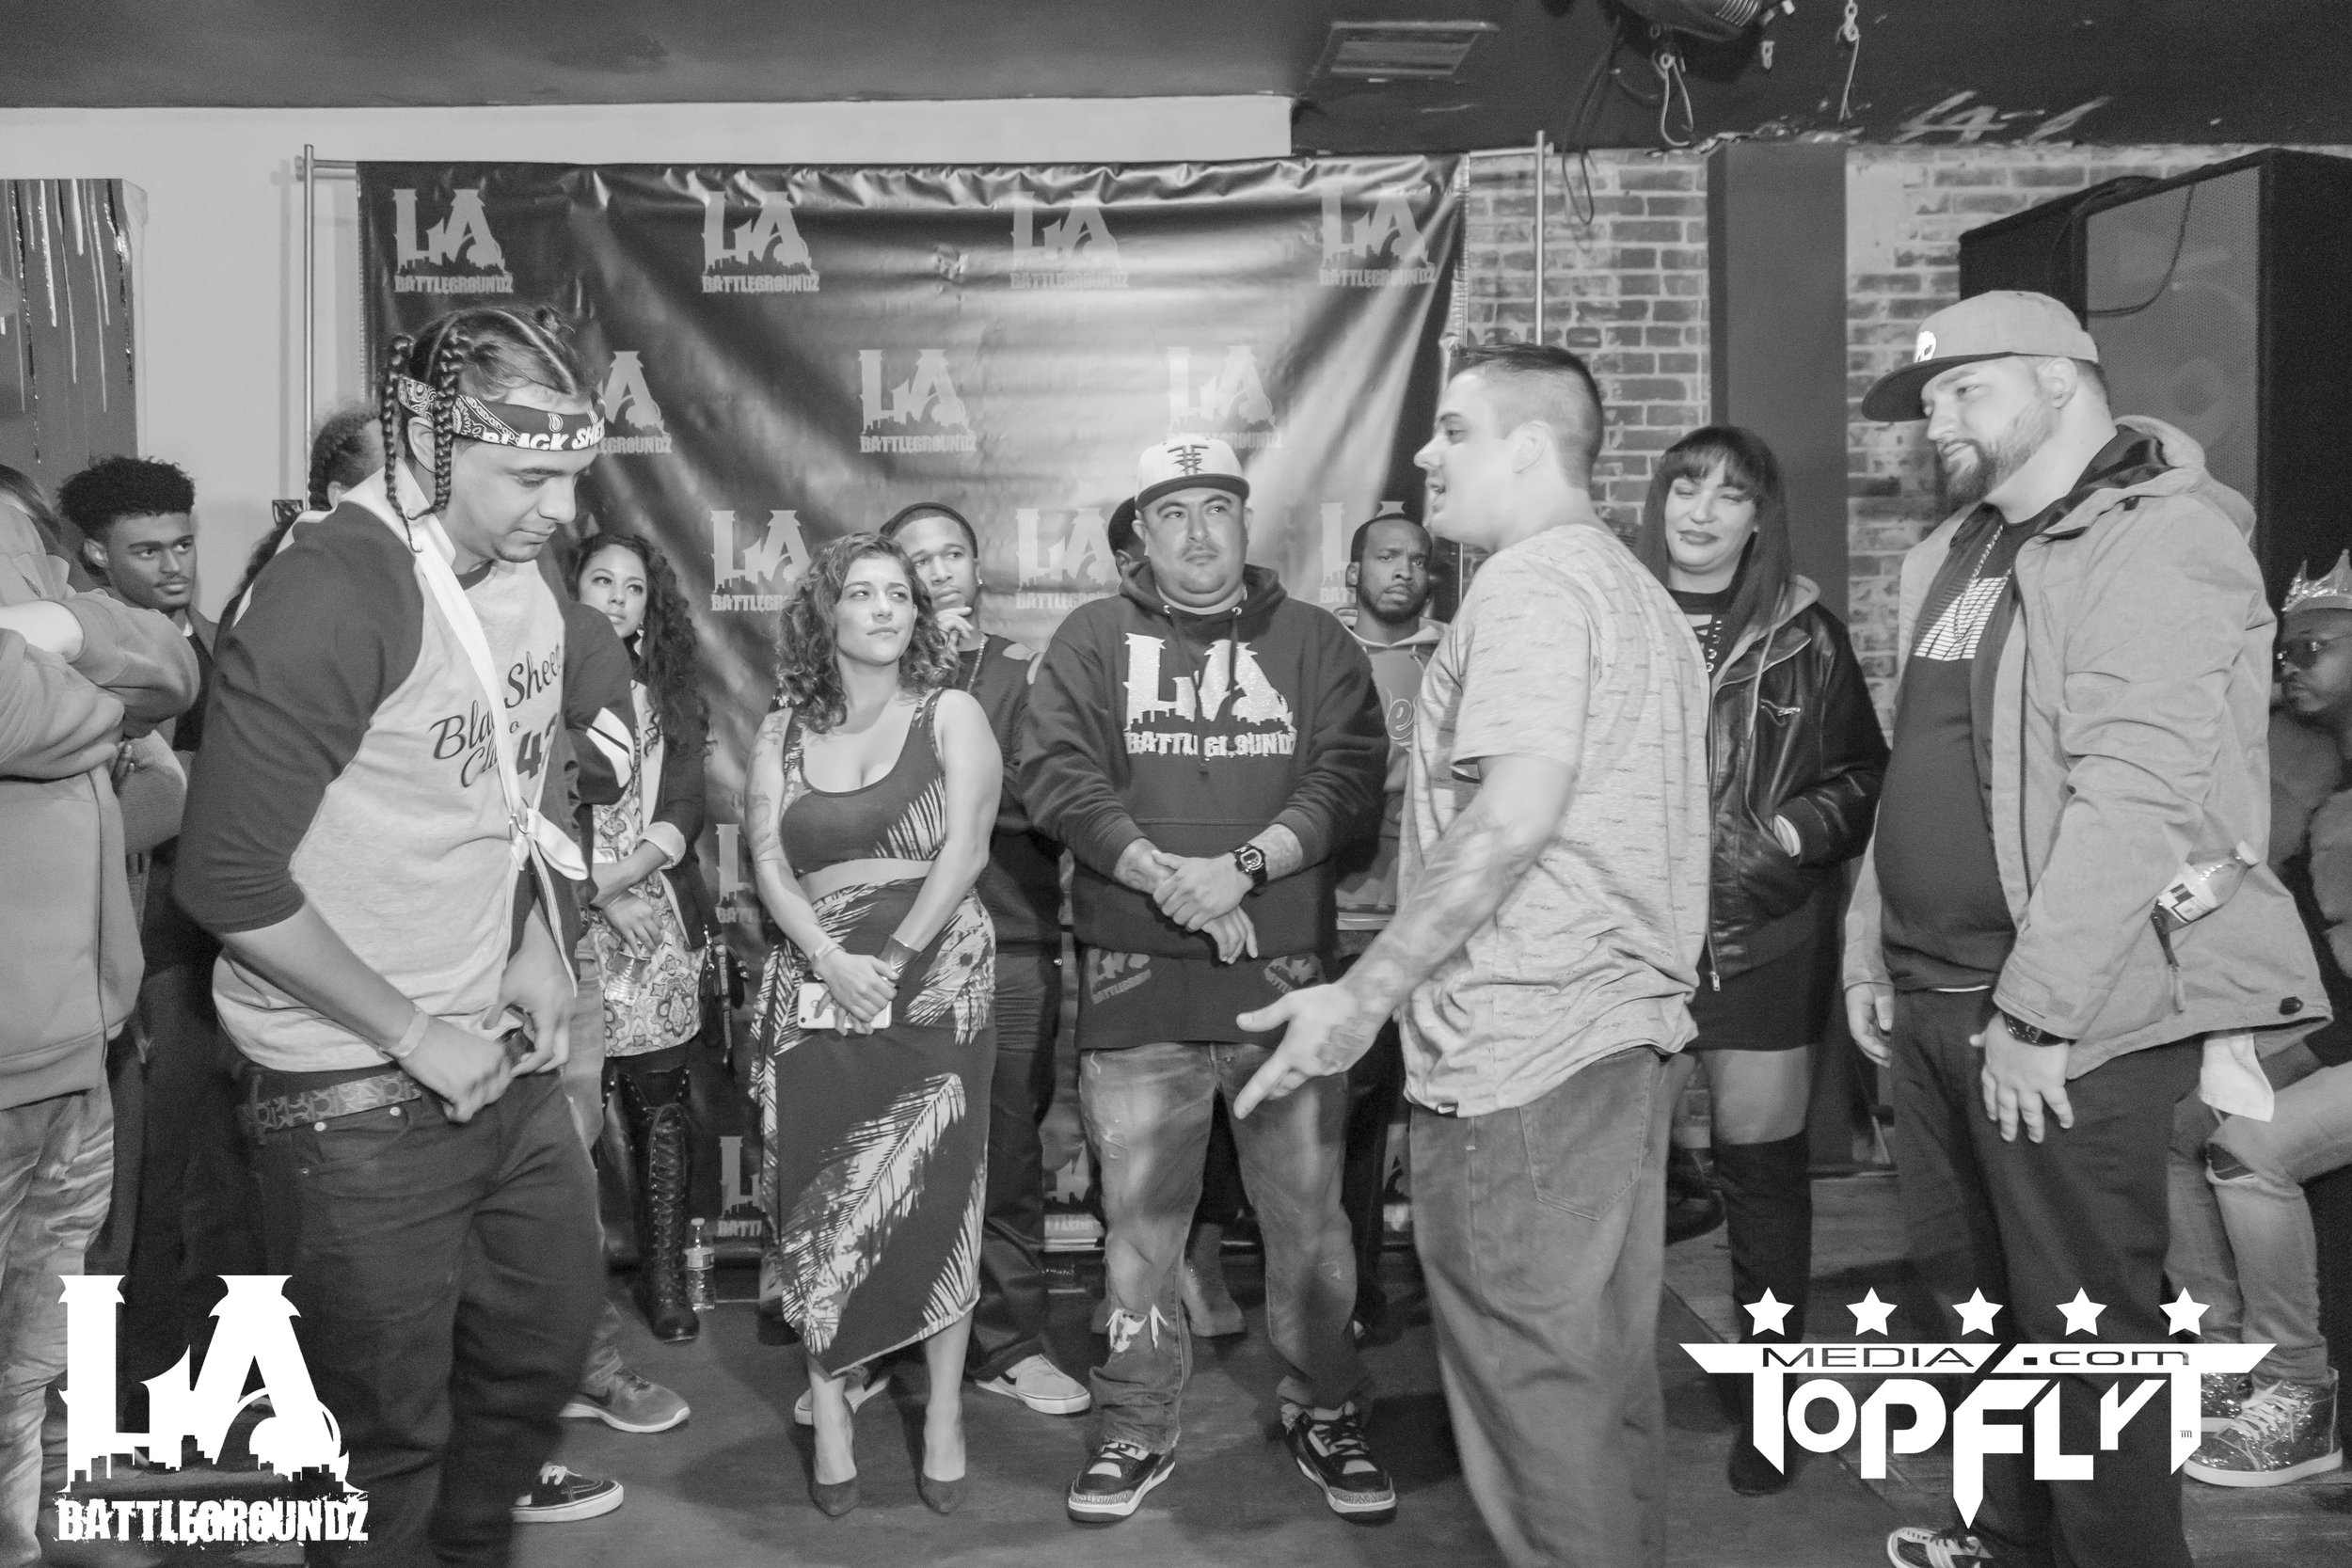 LA Battlegroundz - Decembarfest - The Christening_72.jpg